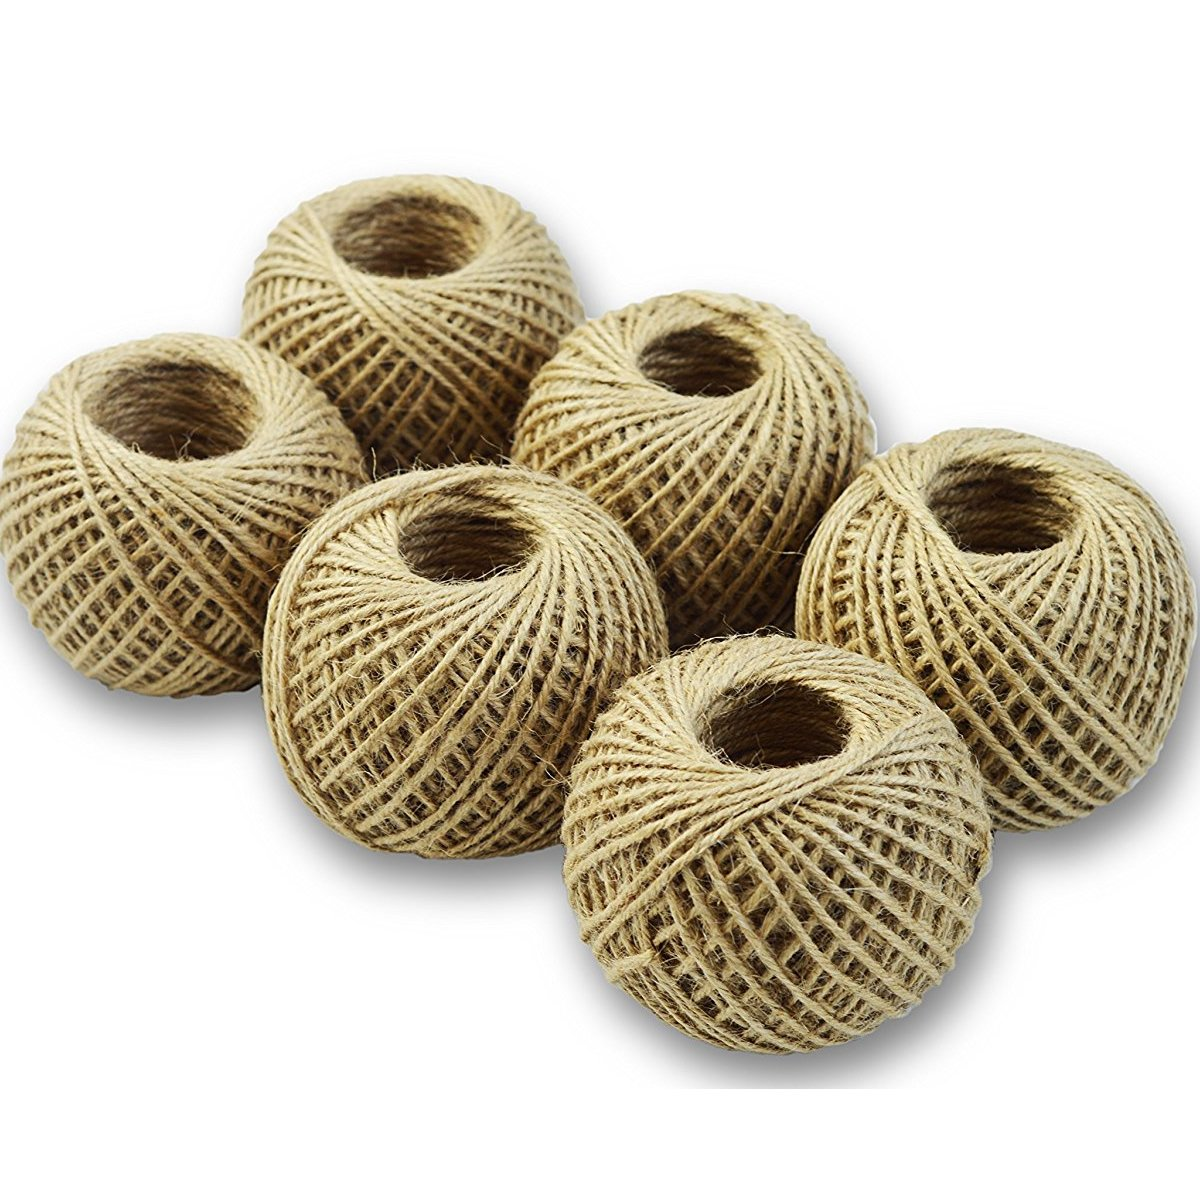 Amazon Com Jute Twine For Crafts Butcher String Or Garden 6